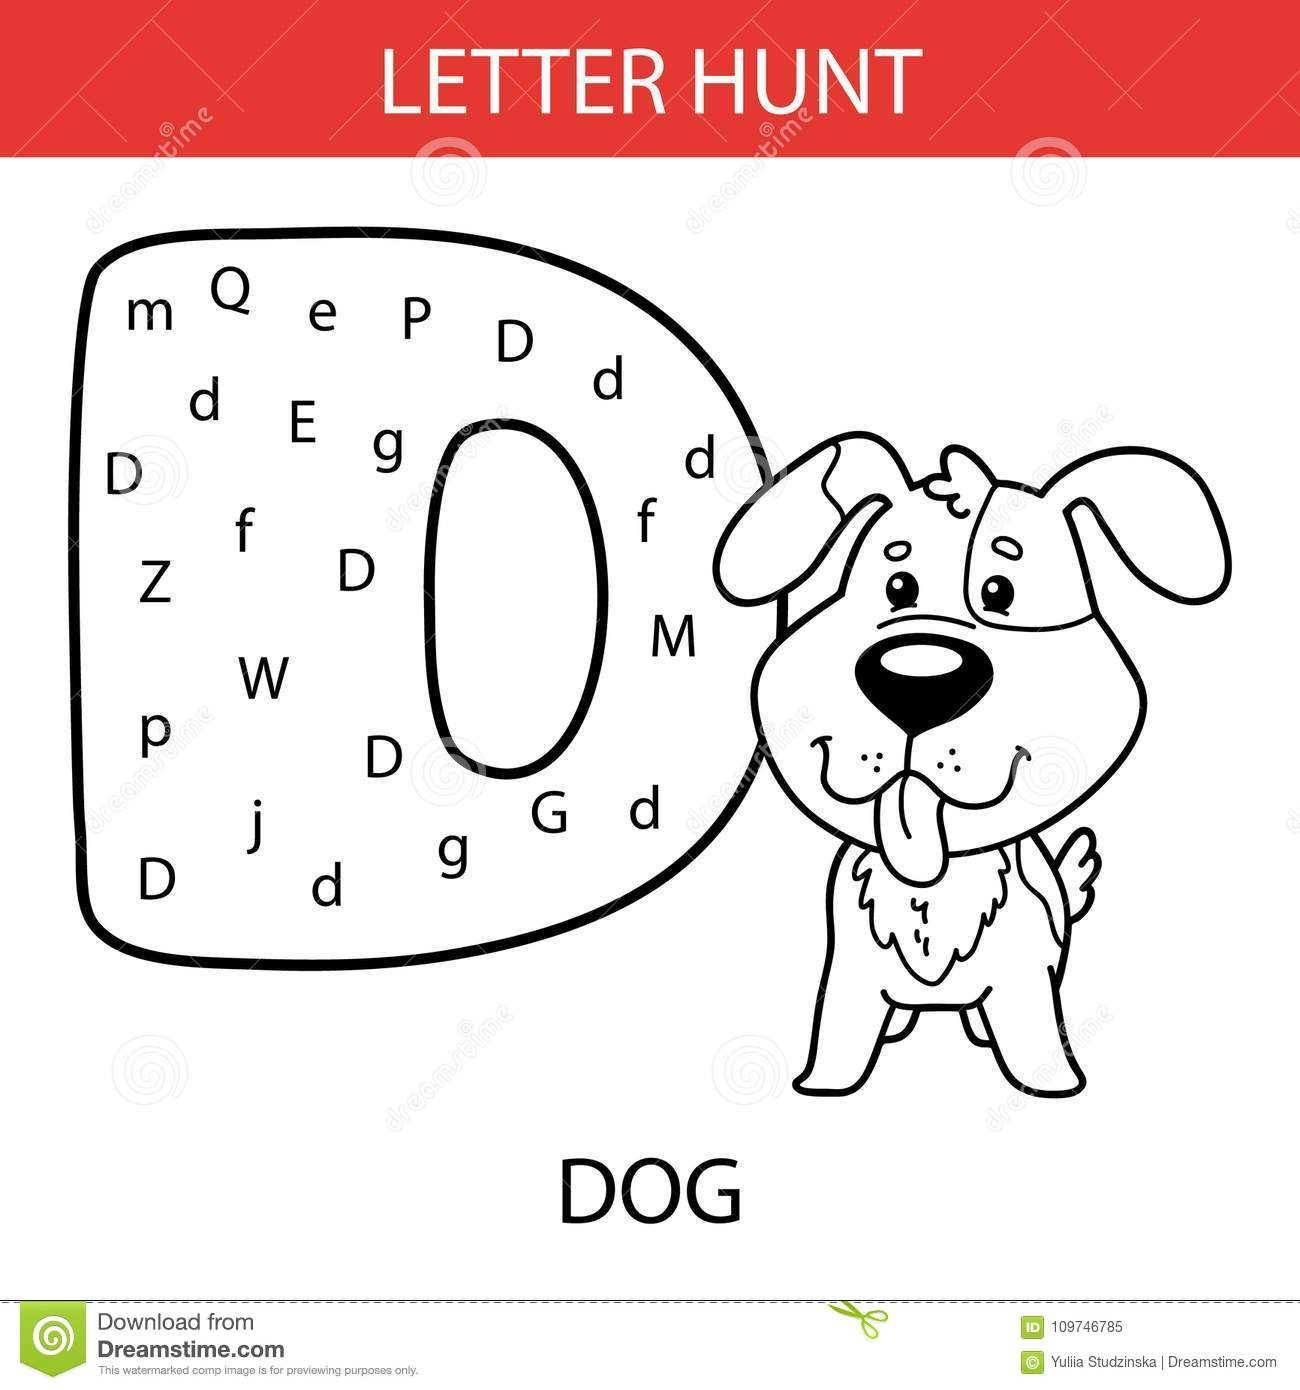 Animal Letter Hunt Puppy Stock Vector Illustration Of English